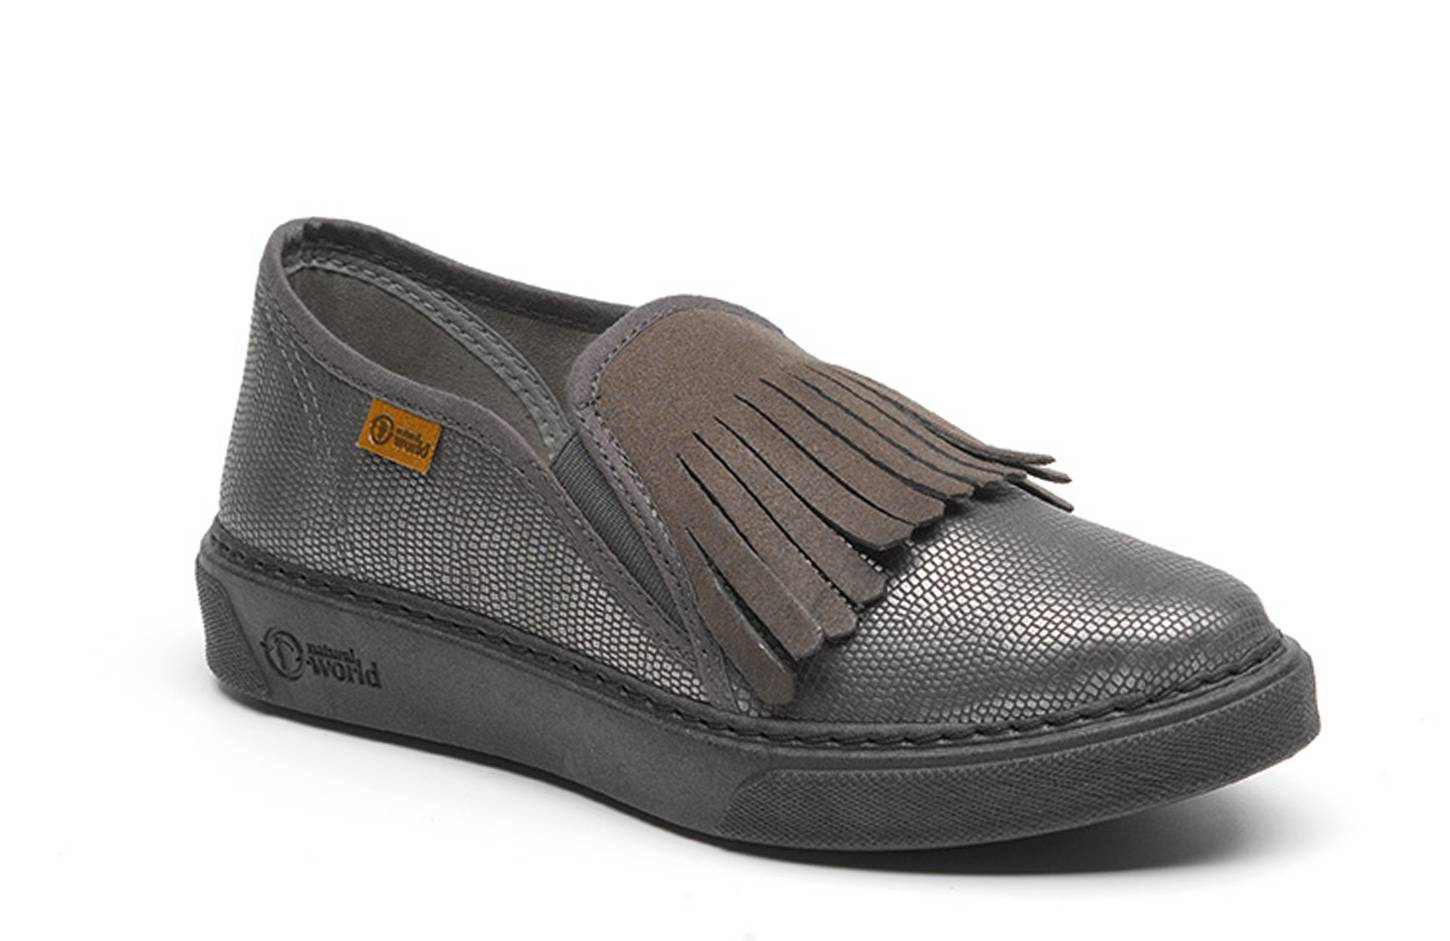 Natural World Zapatilla Slip on Flecos Lucertola 1180 Gris